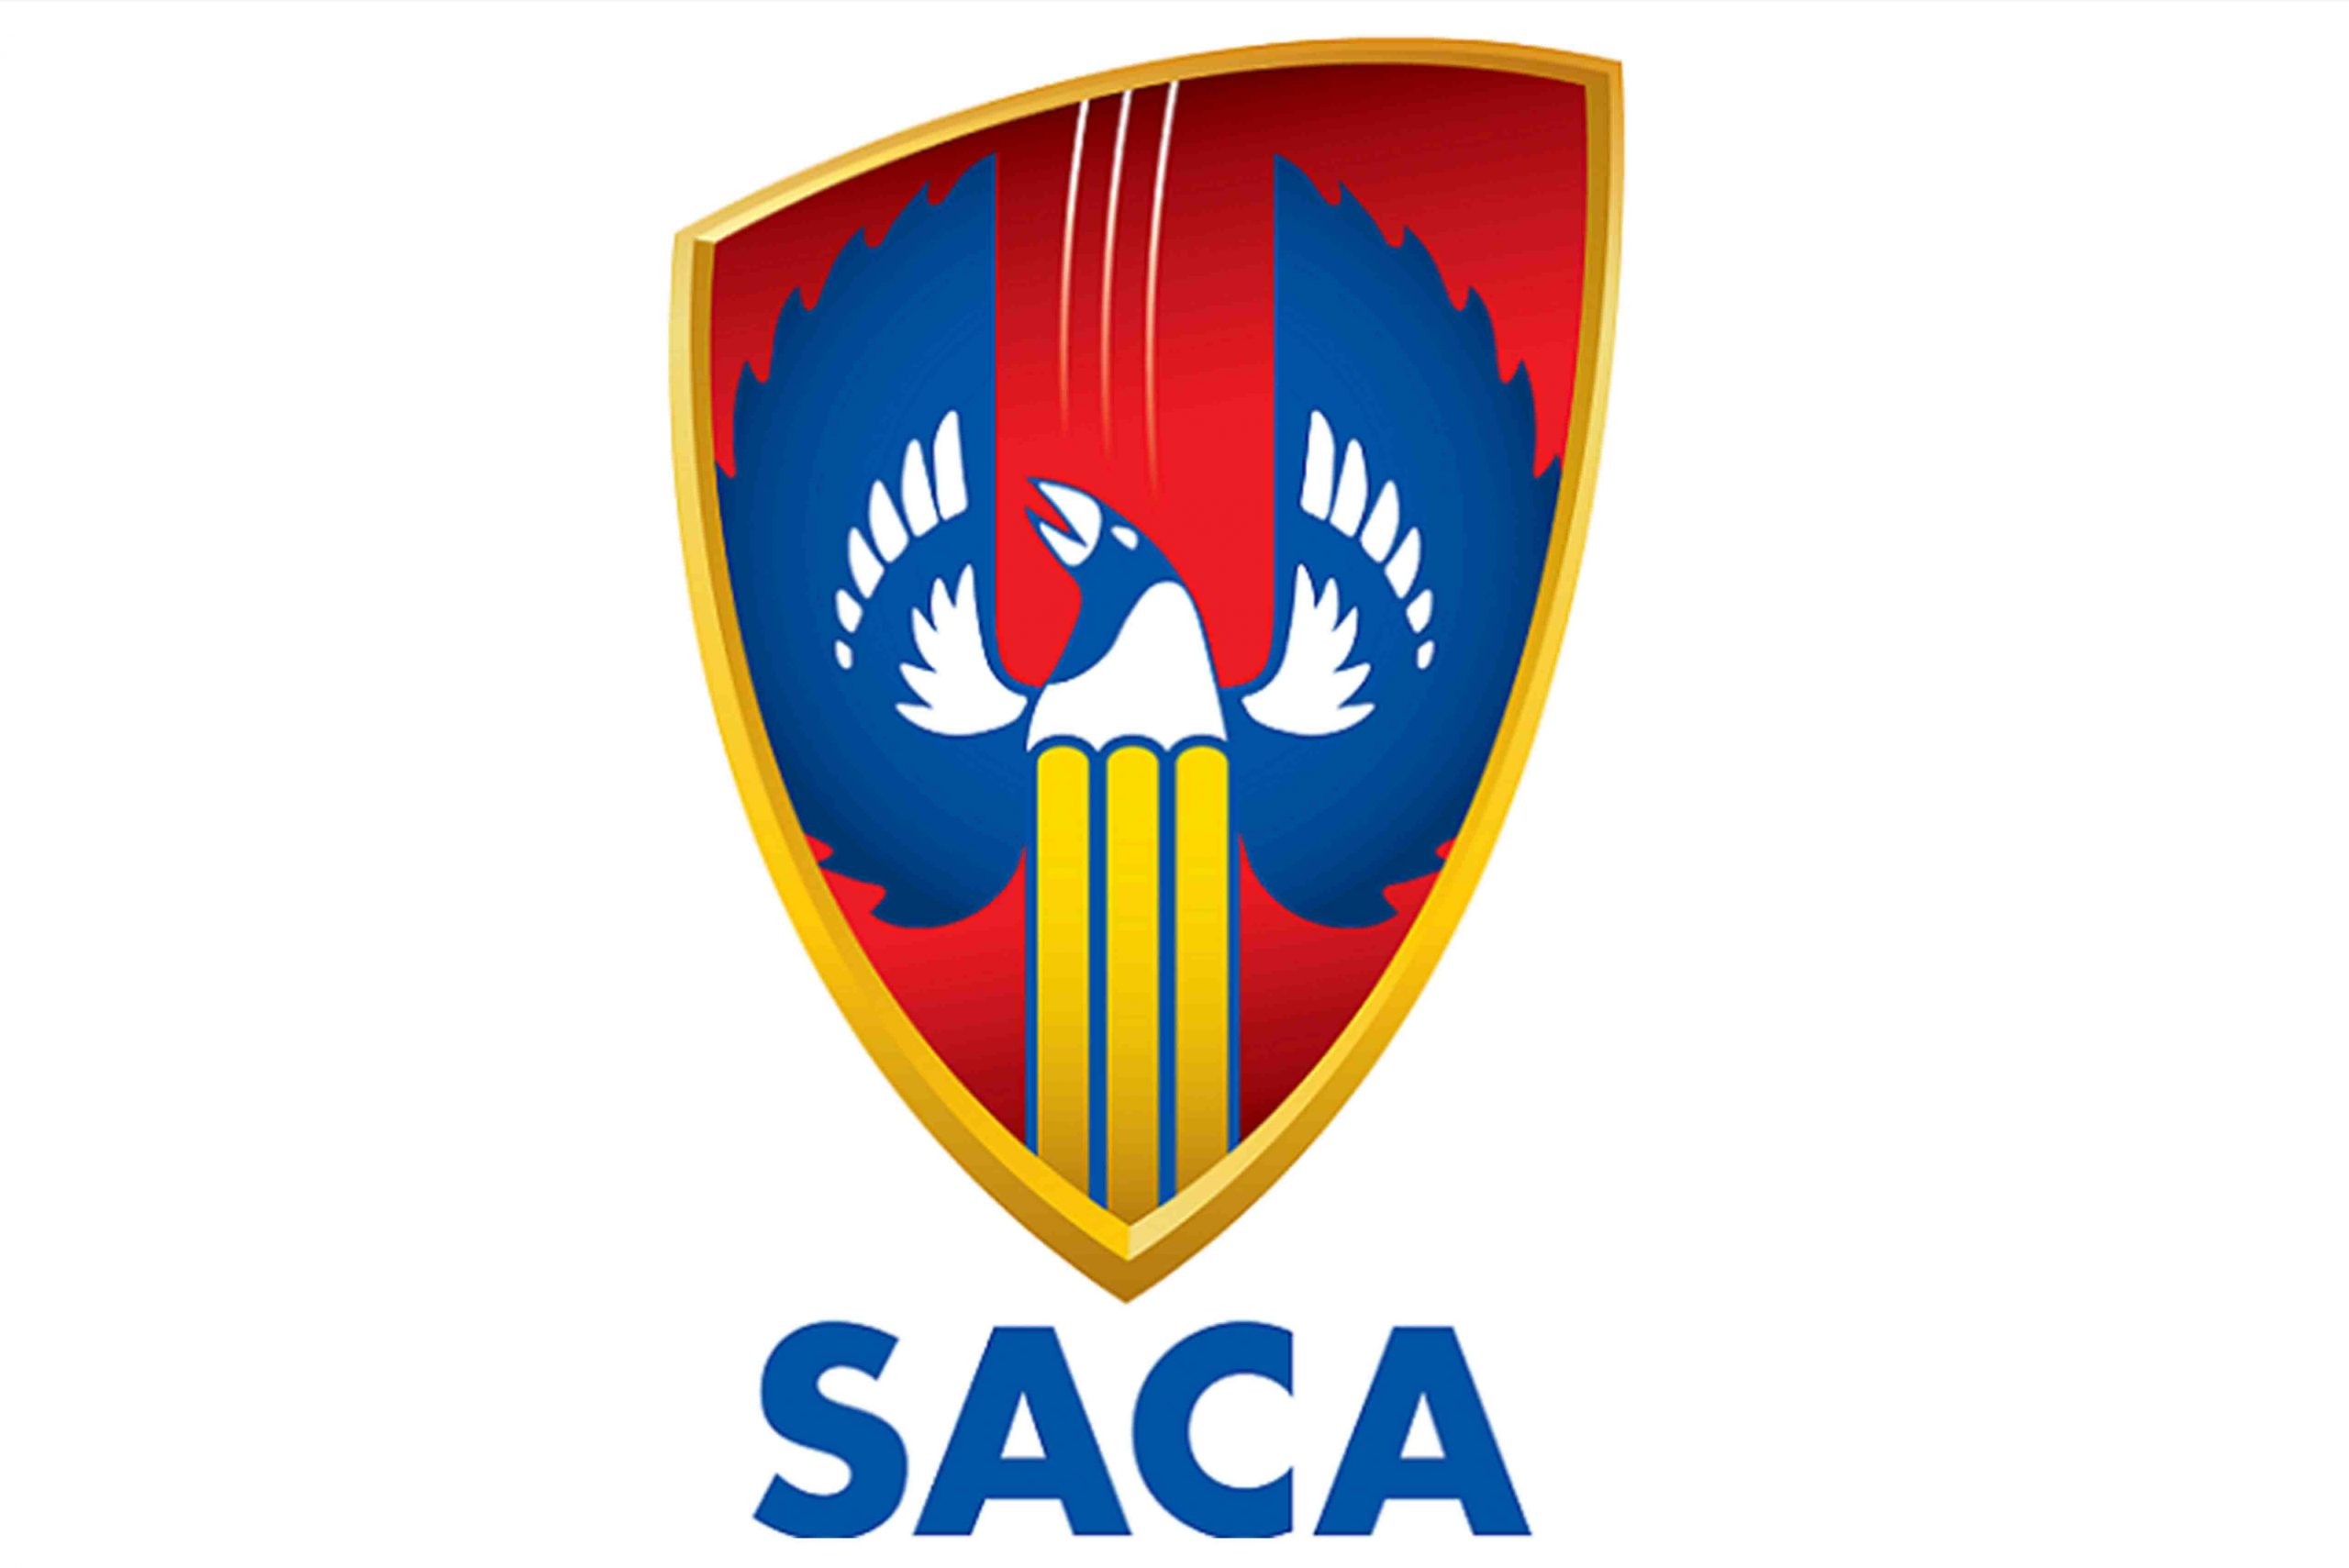 South Australian Cricket Association logo on a white background